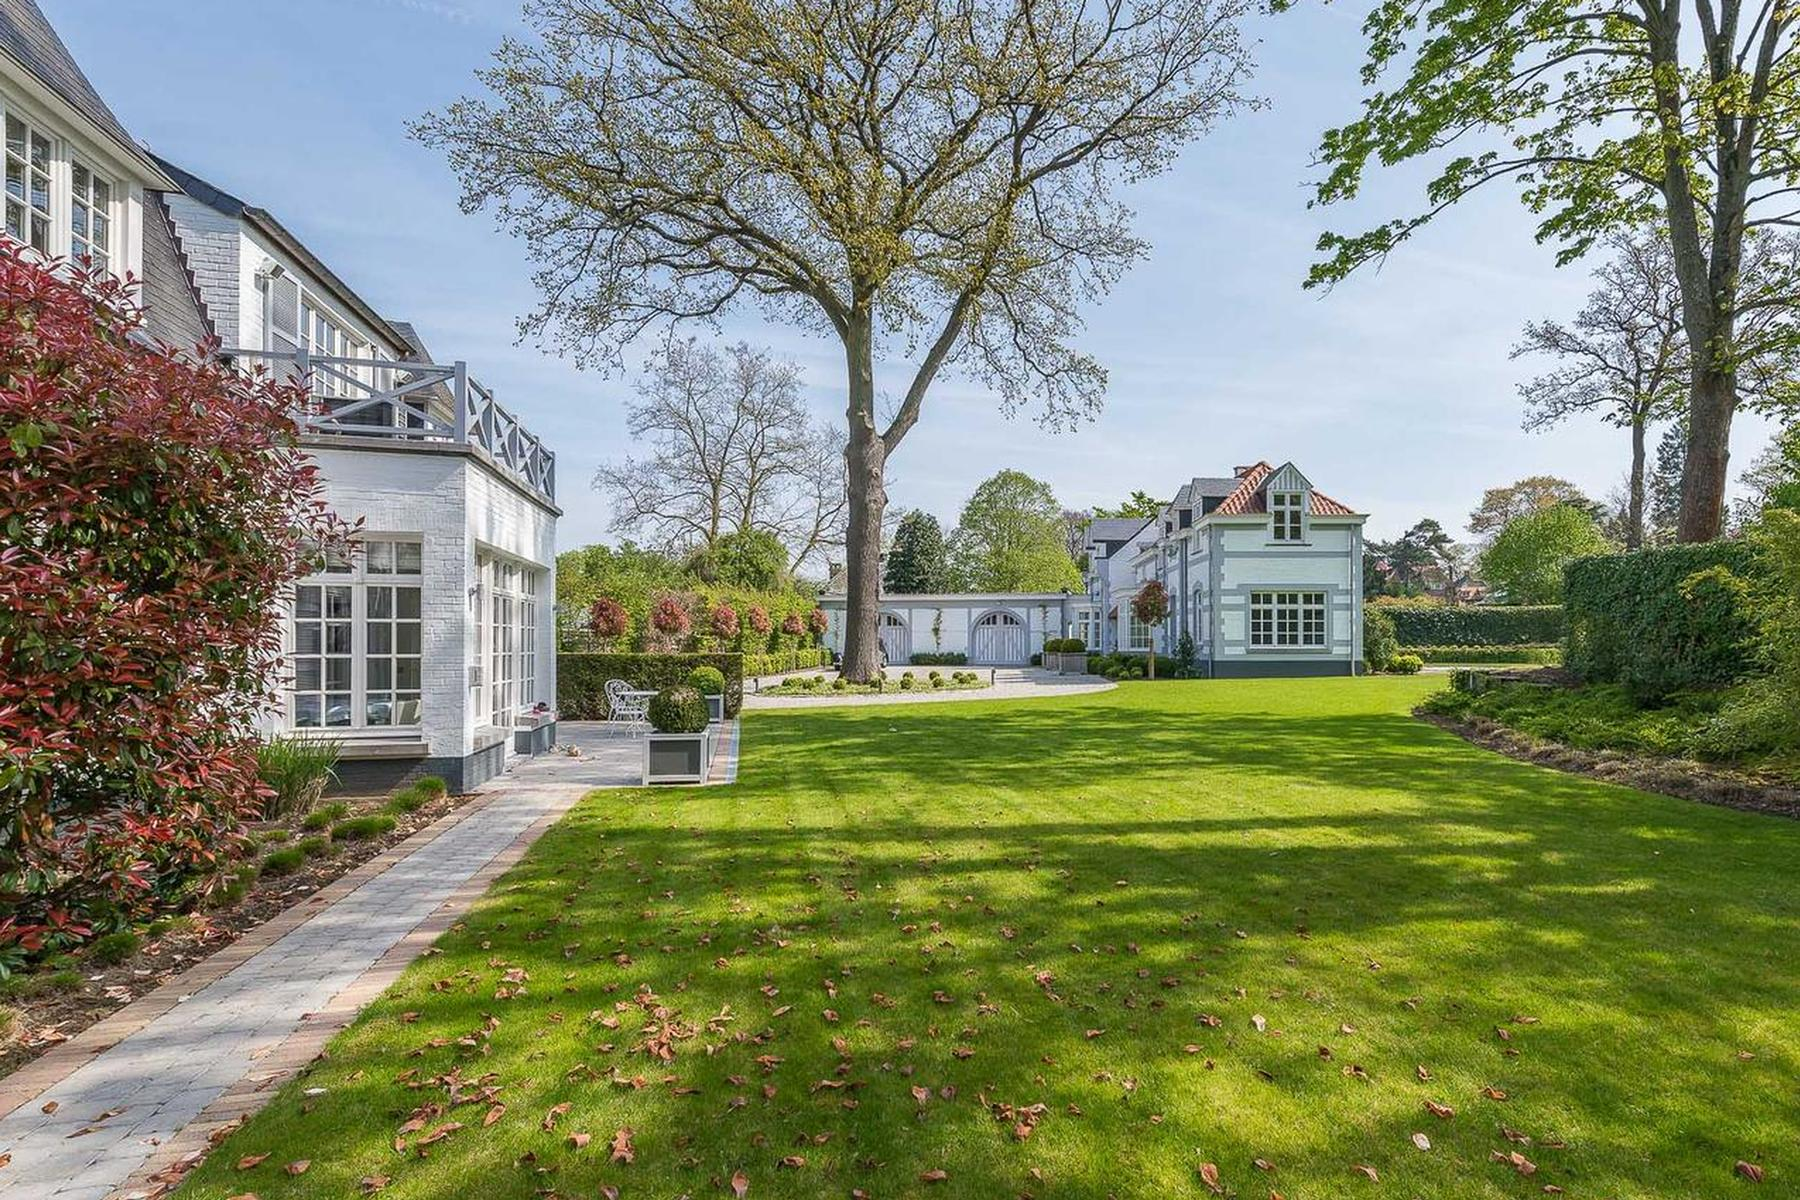 Other Residential for Sale at Woluwe-Saint-Pierre I Parc de la Woluwe Other Belgium, Other Areas In Belgium, 1150 Belgium